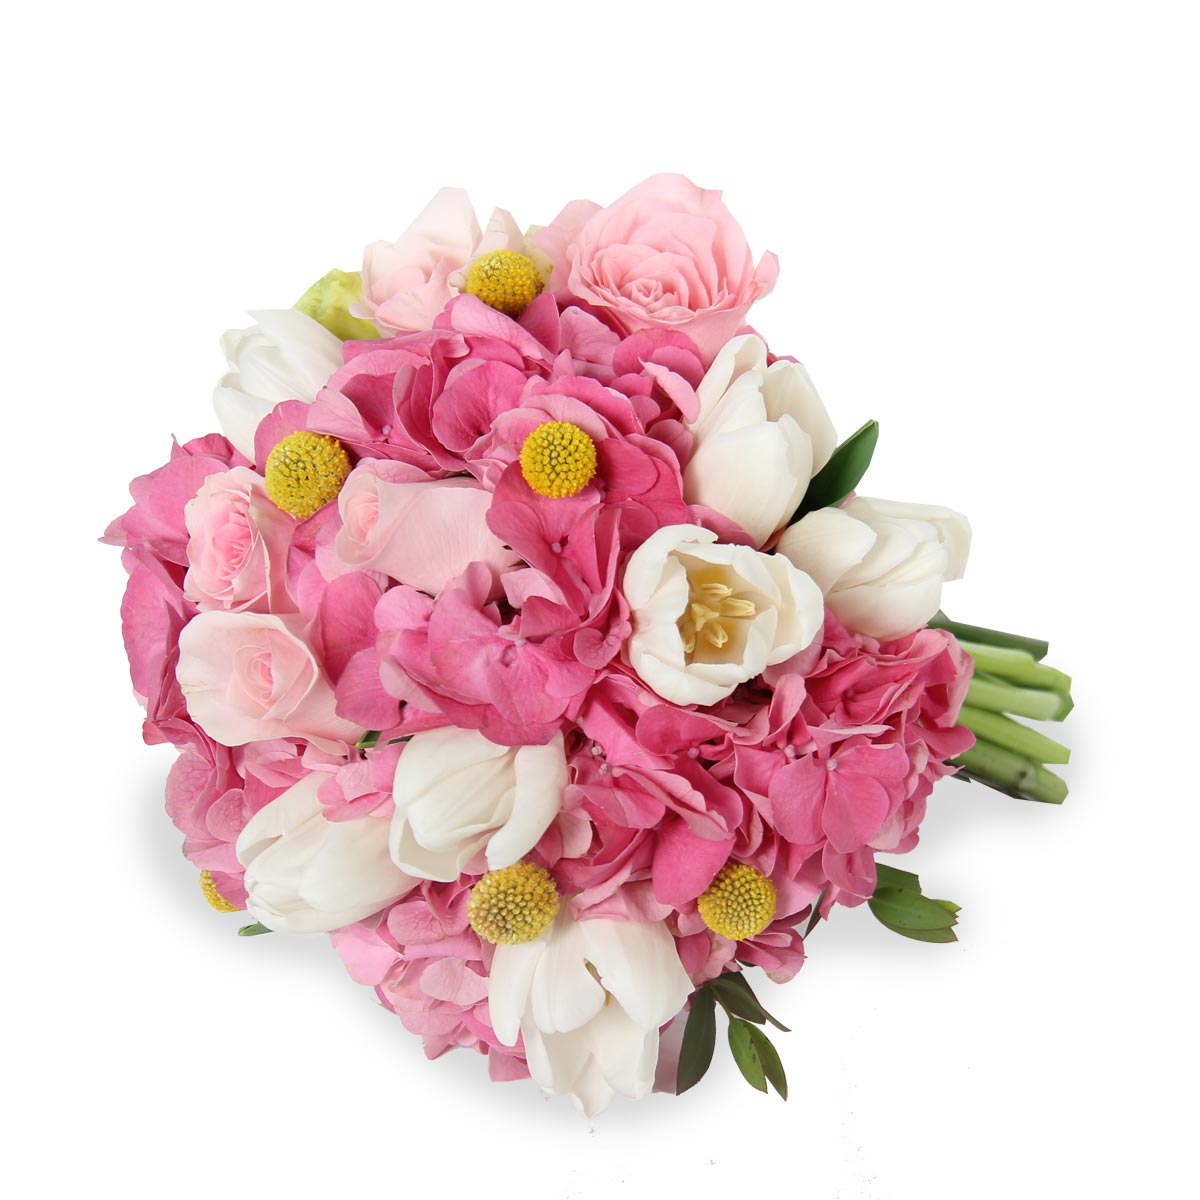 WB1613 pink hydrangea white tulips and roses bouquet